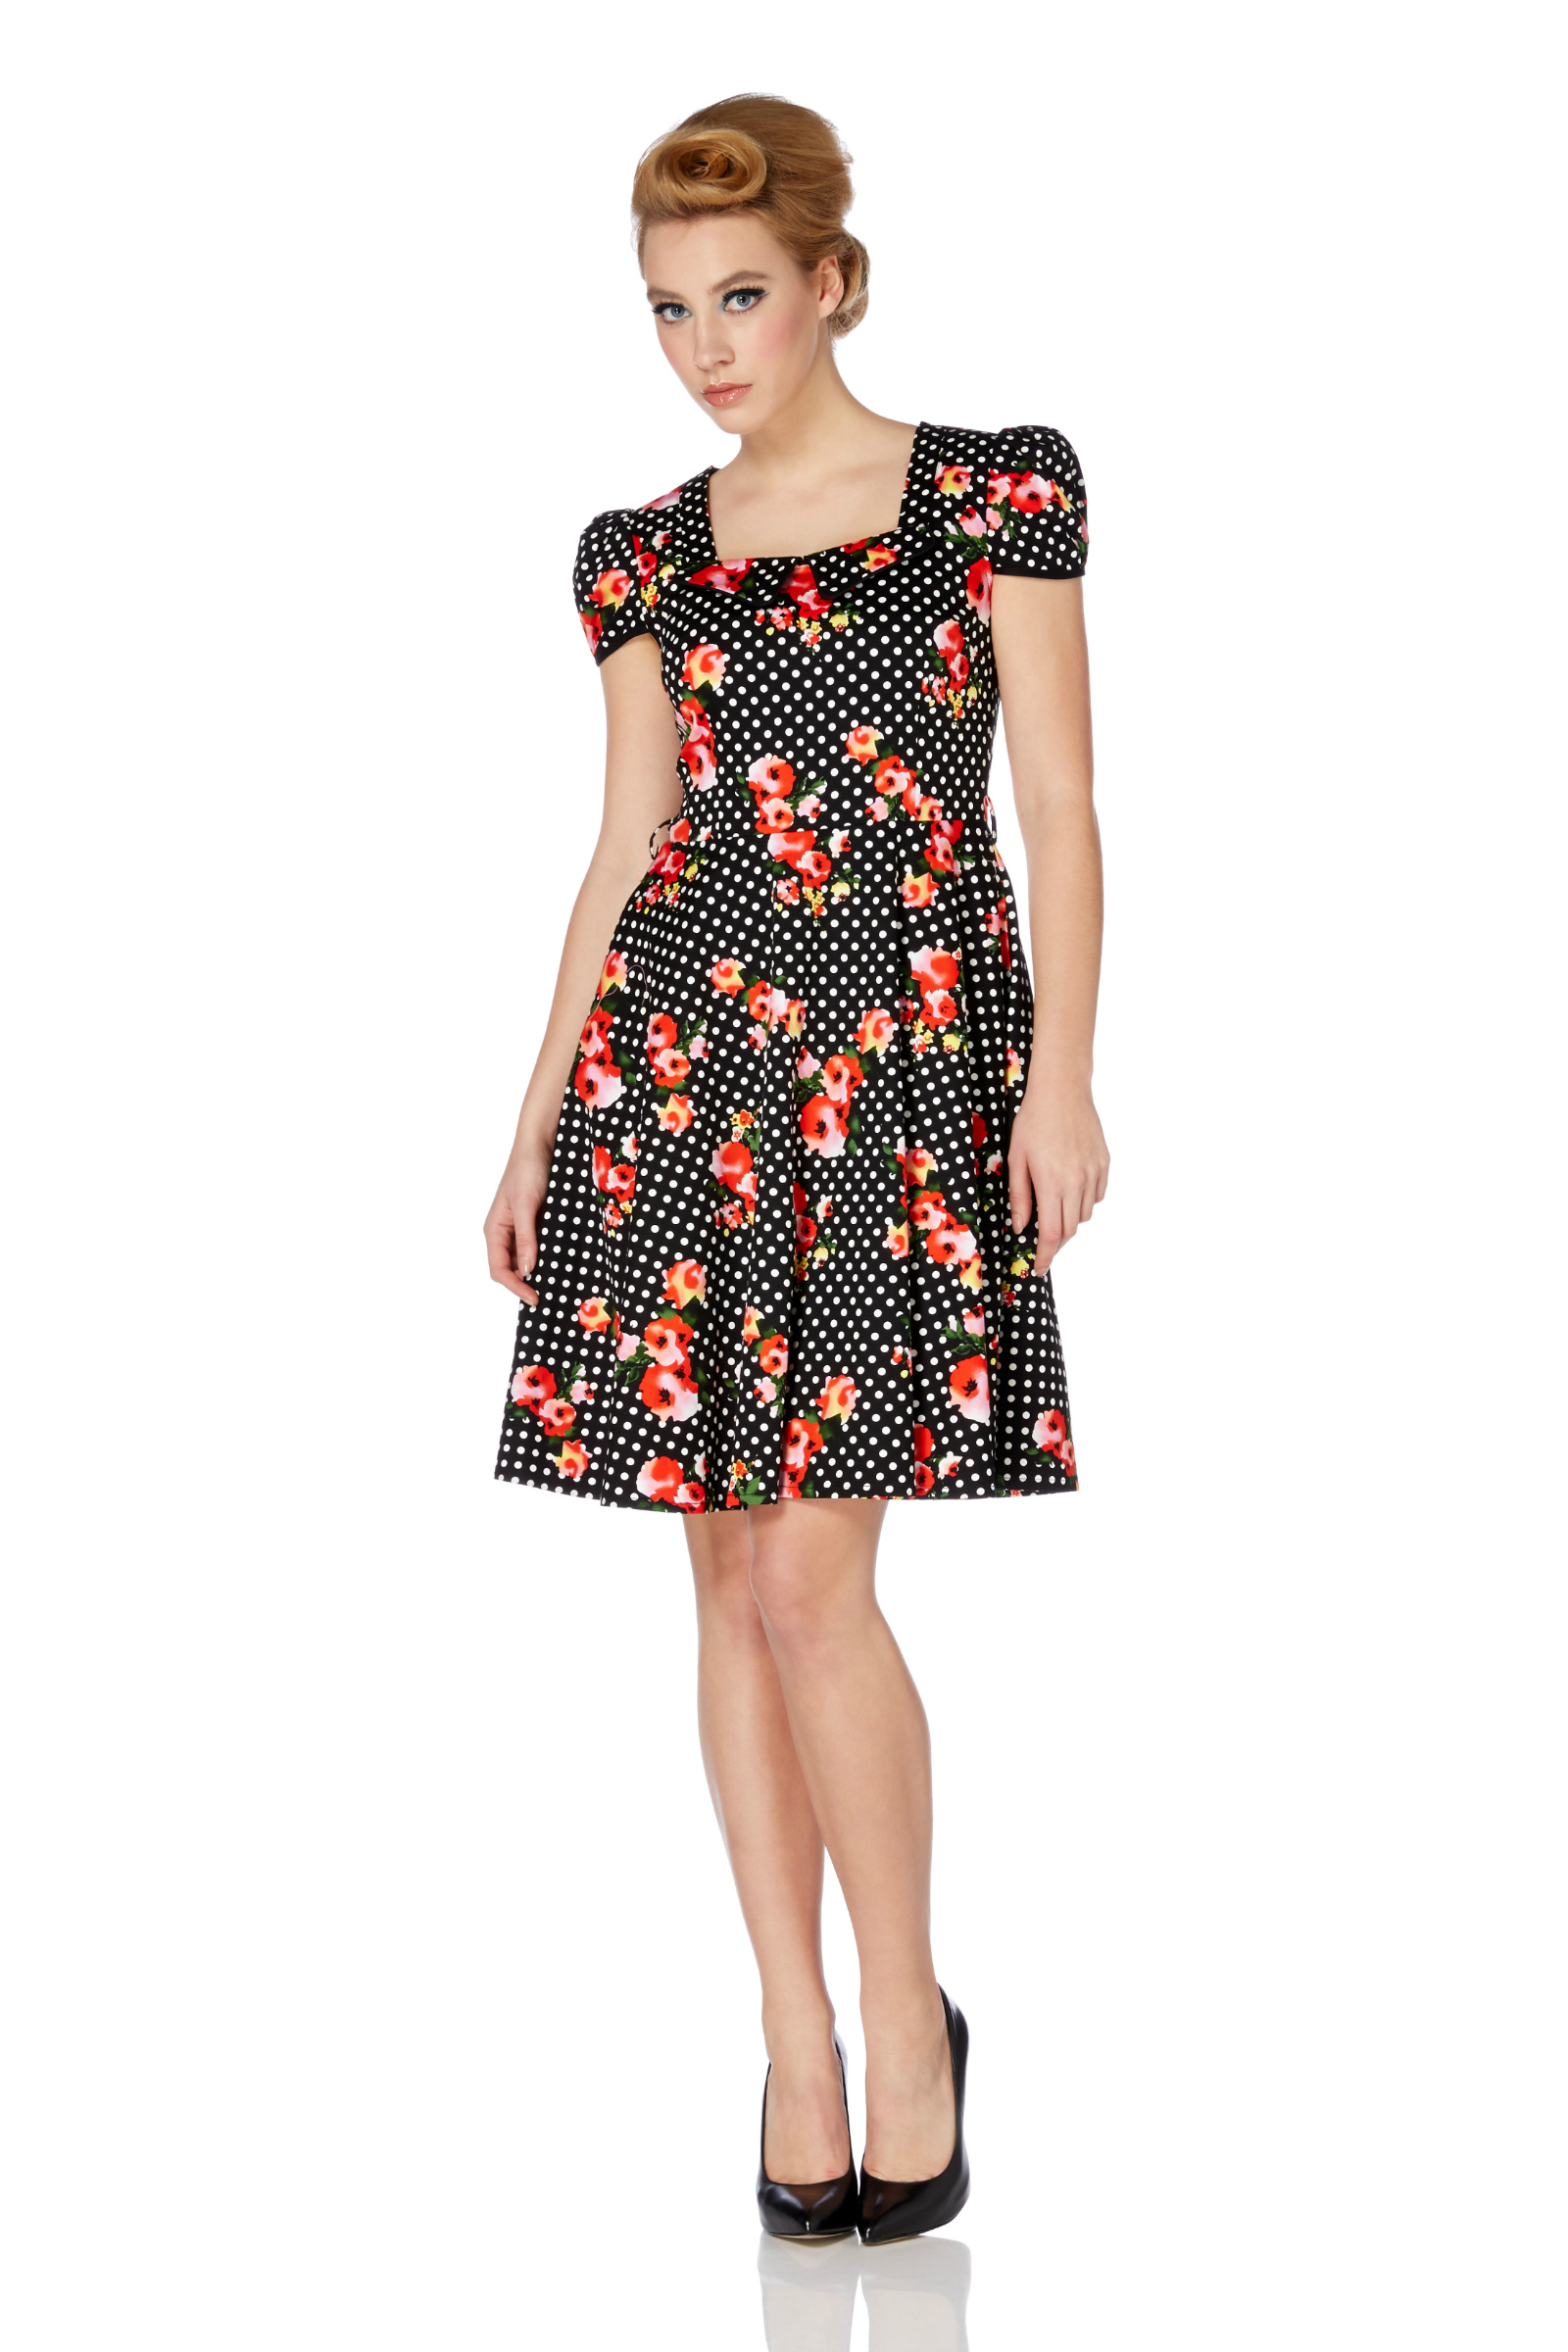 Voodoo Vixen Floral Polka Dot Dress